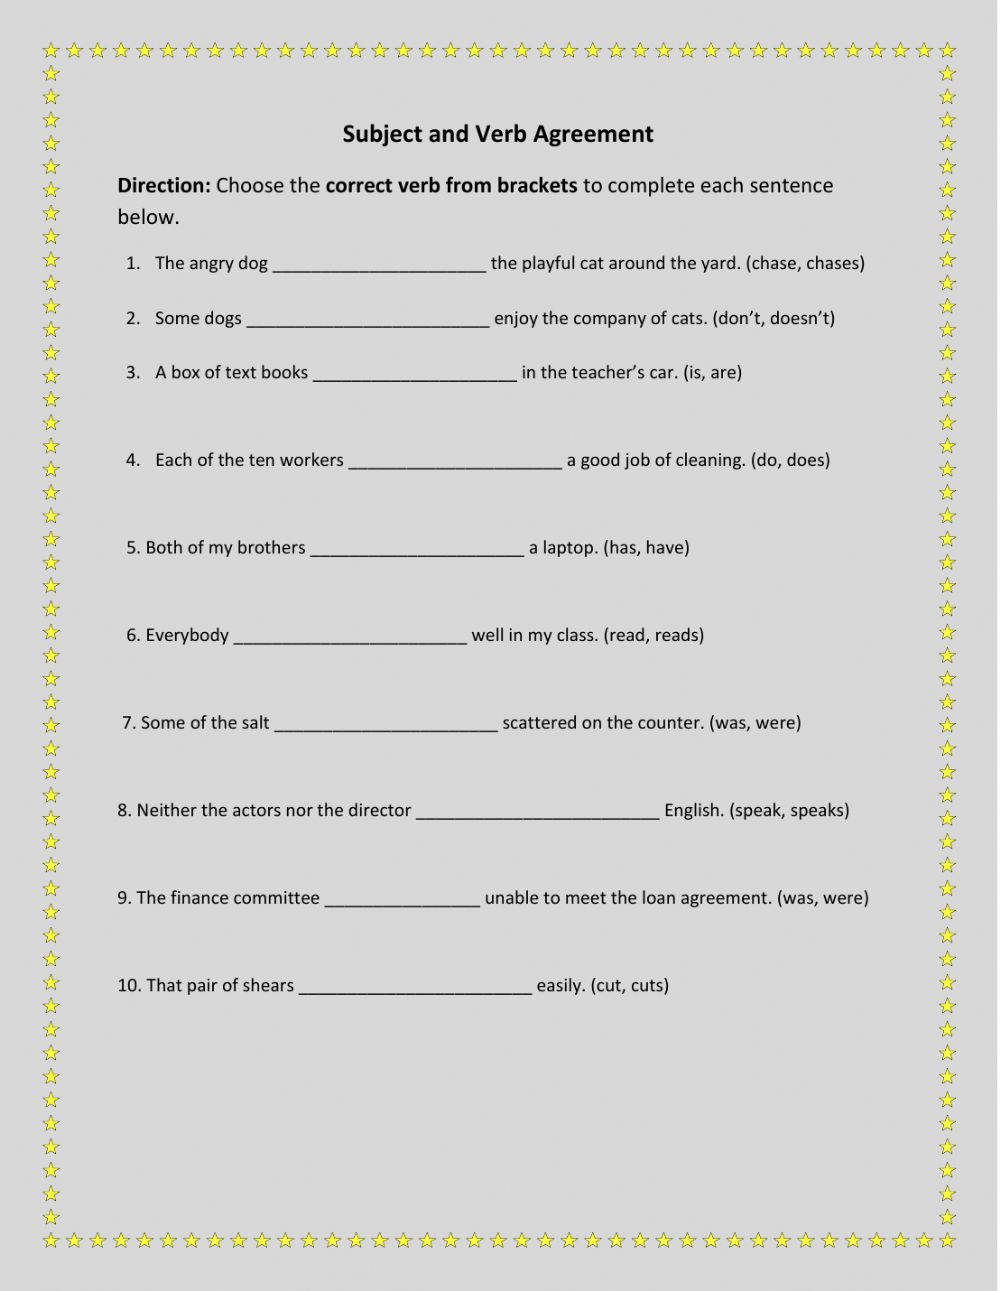 medium resolution of Subject and Verb Agreement 2 worksheet